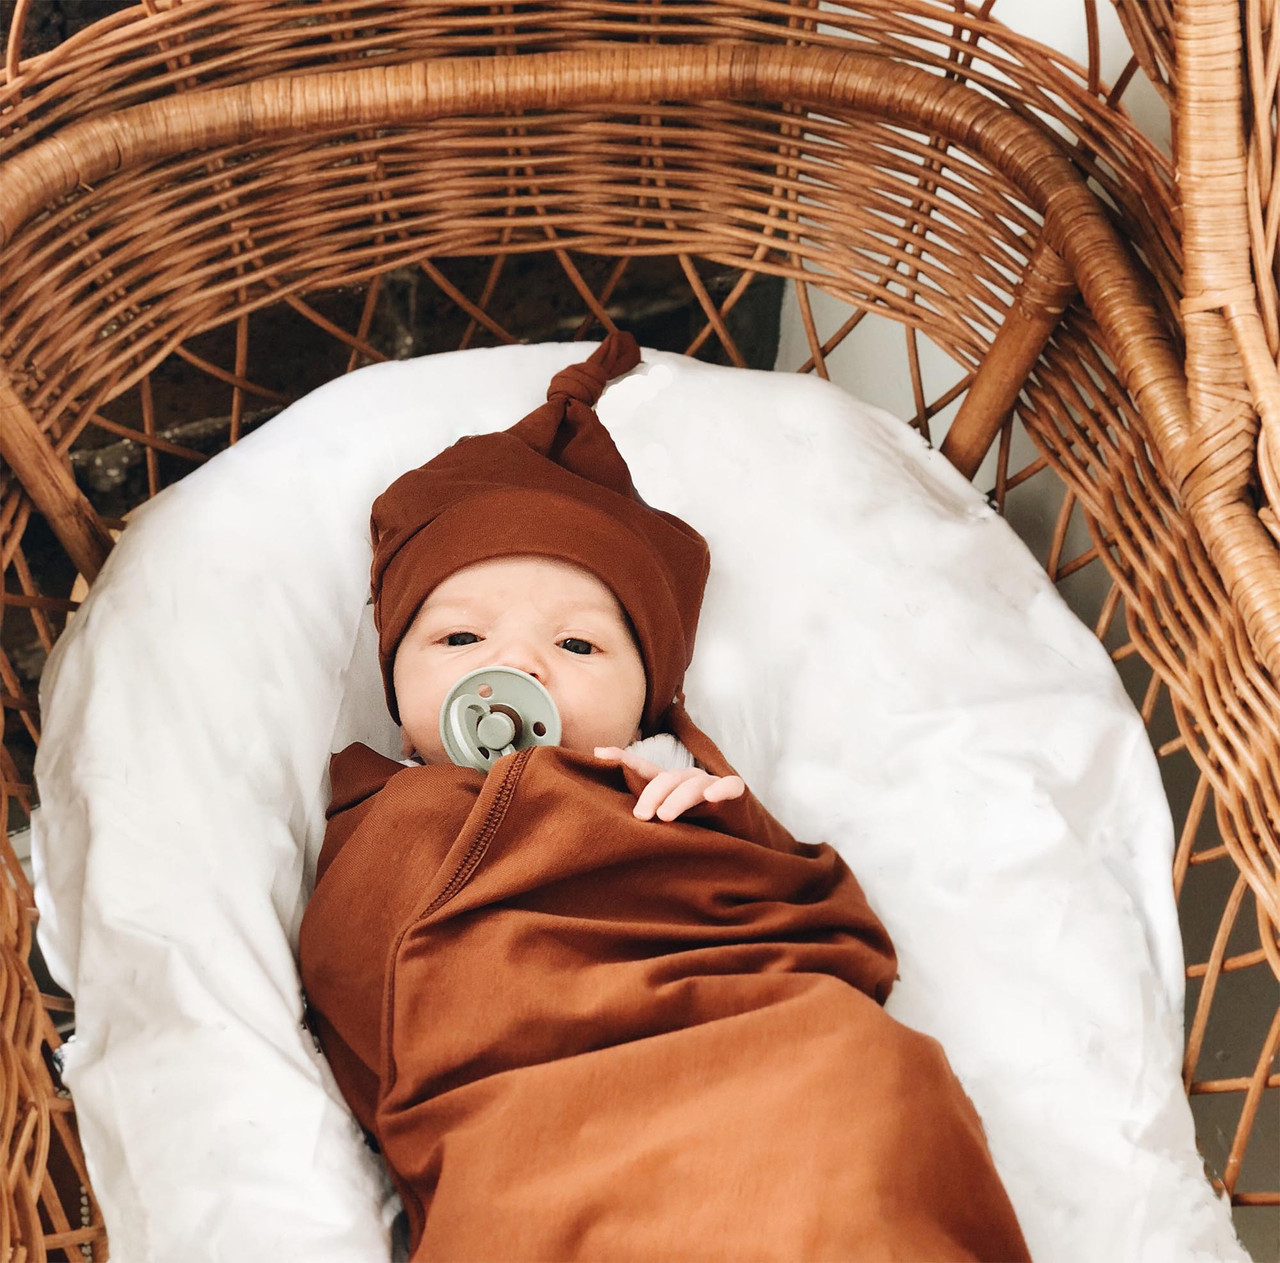 Snuggly Jacks Stretch Wrap & Beanie Set   Baby Barn Discounts Snuggly Jacks swaddle is perfect for getting a nice tight fit, while still being breathable.